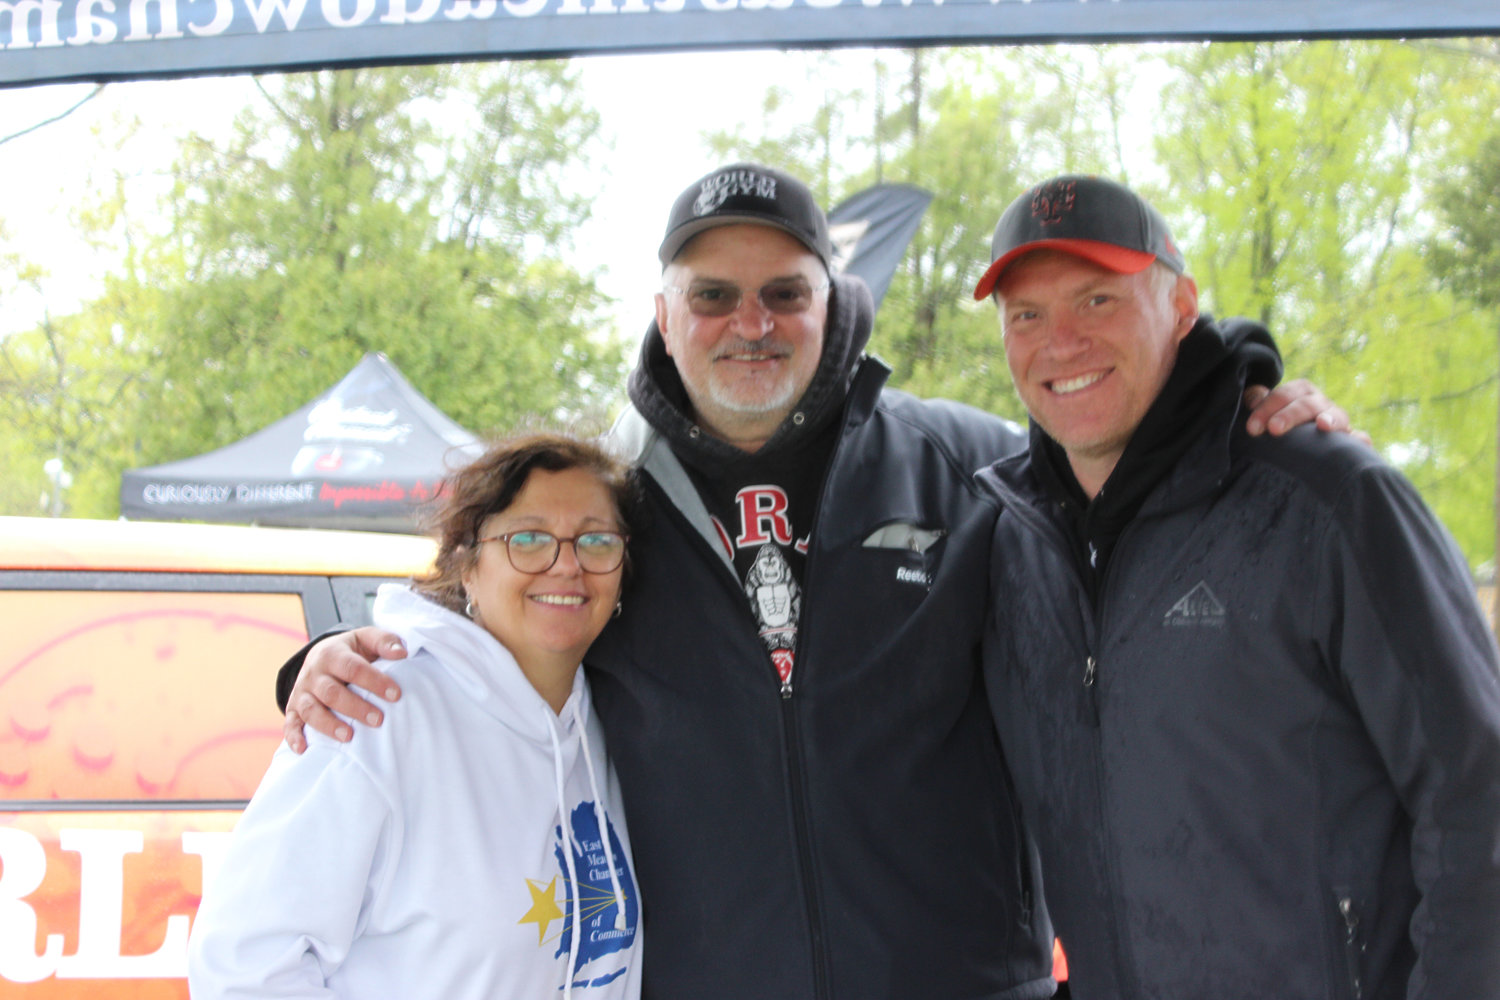 East Meadow Chamber of Commerce Vice President Christine Mooney, left, Chairman of the Board of Directors Frank Camarano and President Michael Levy set up shop at the finish line to greet runners and spectators.